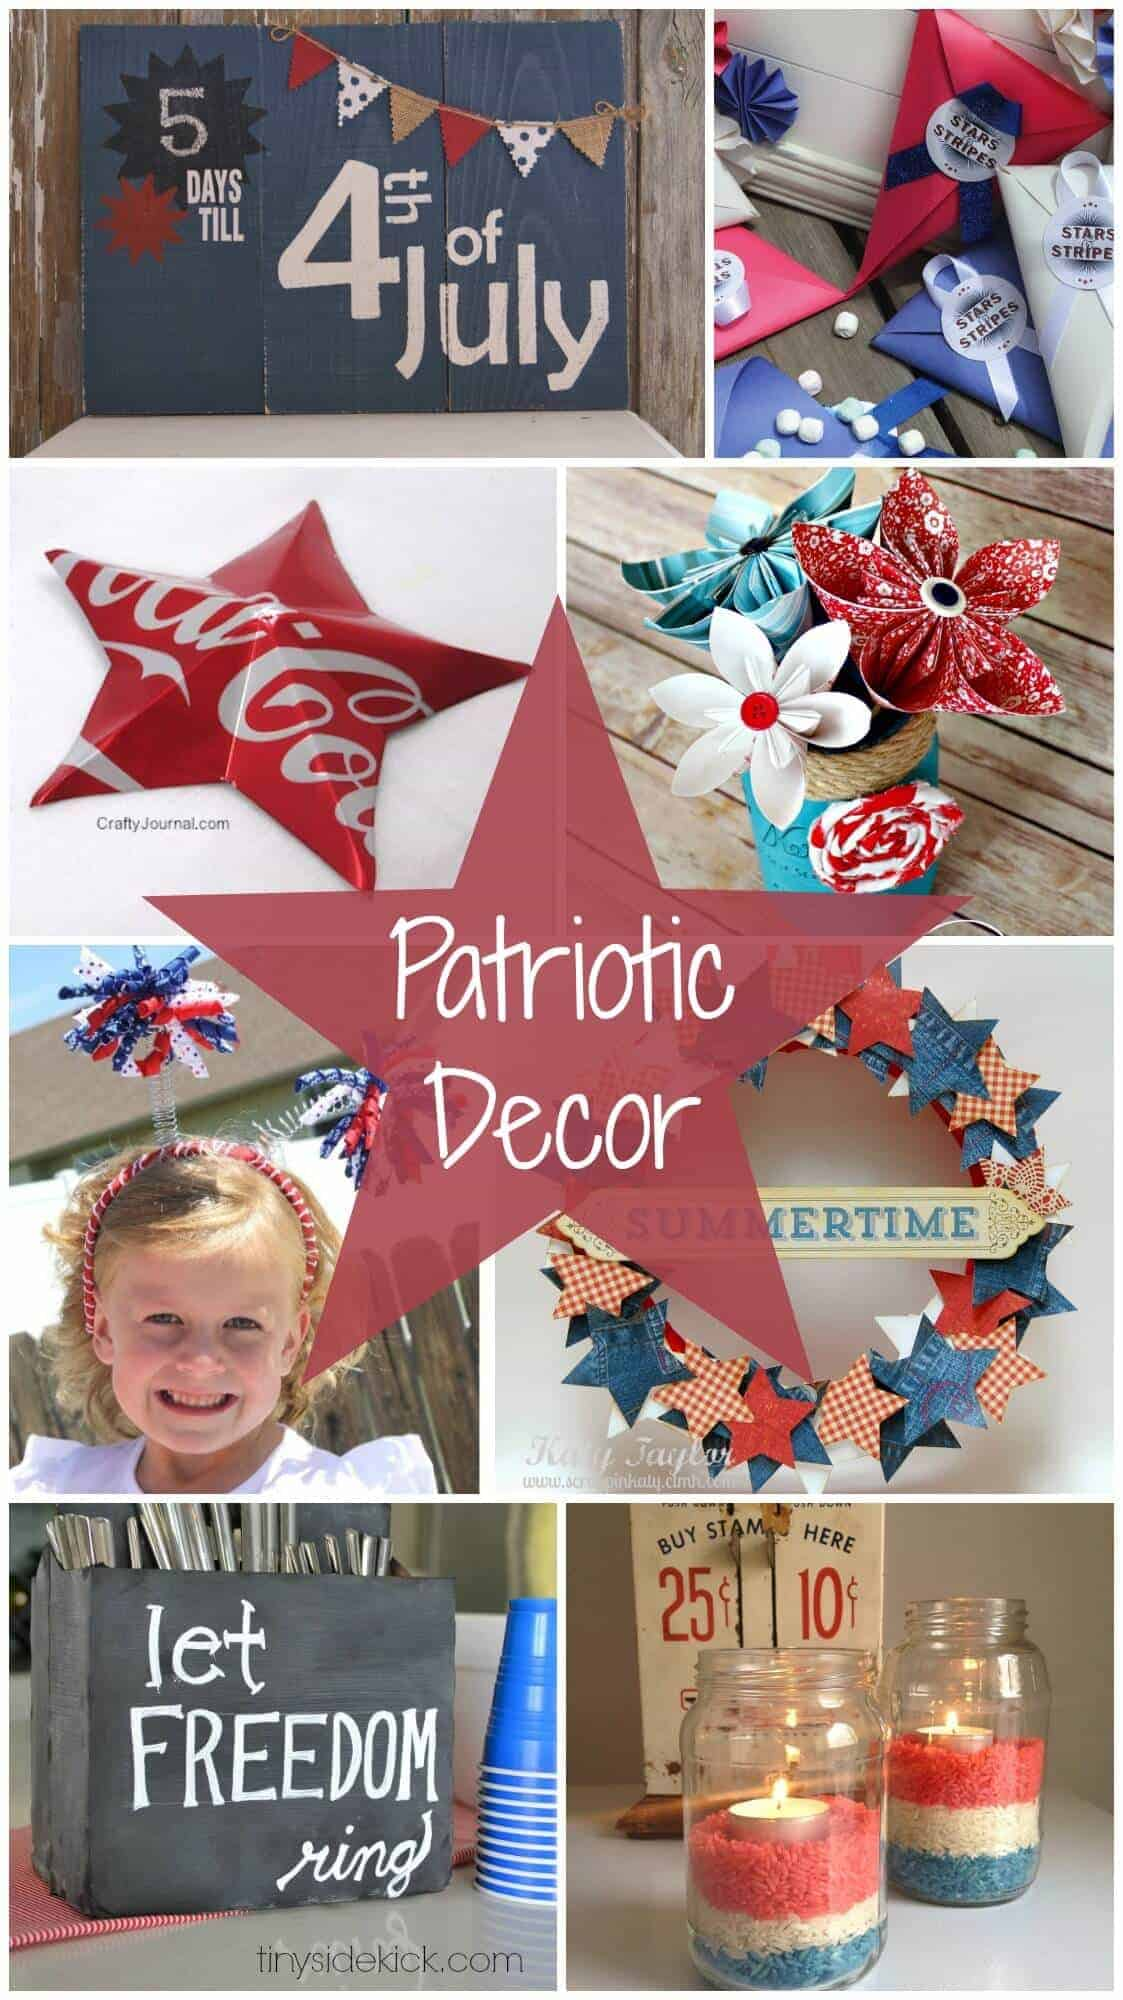 patriotic decorations1